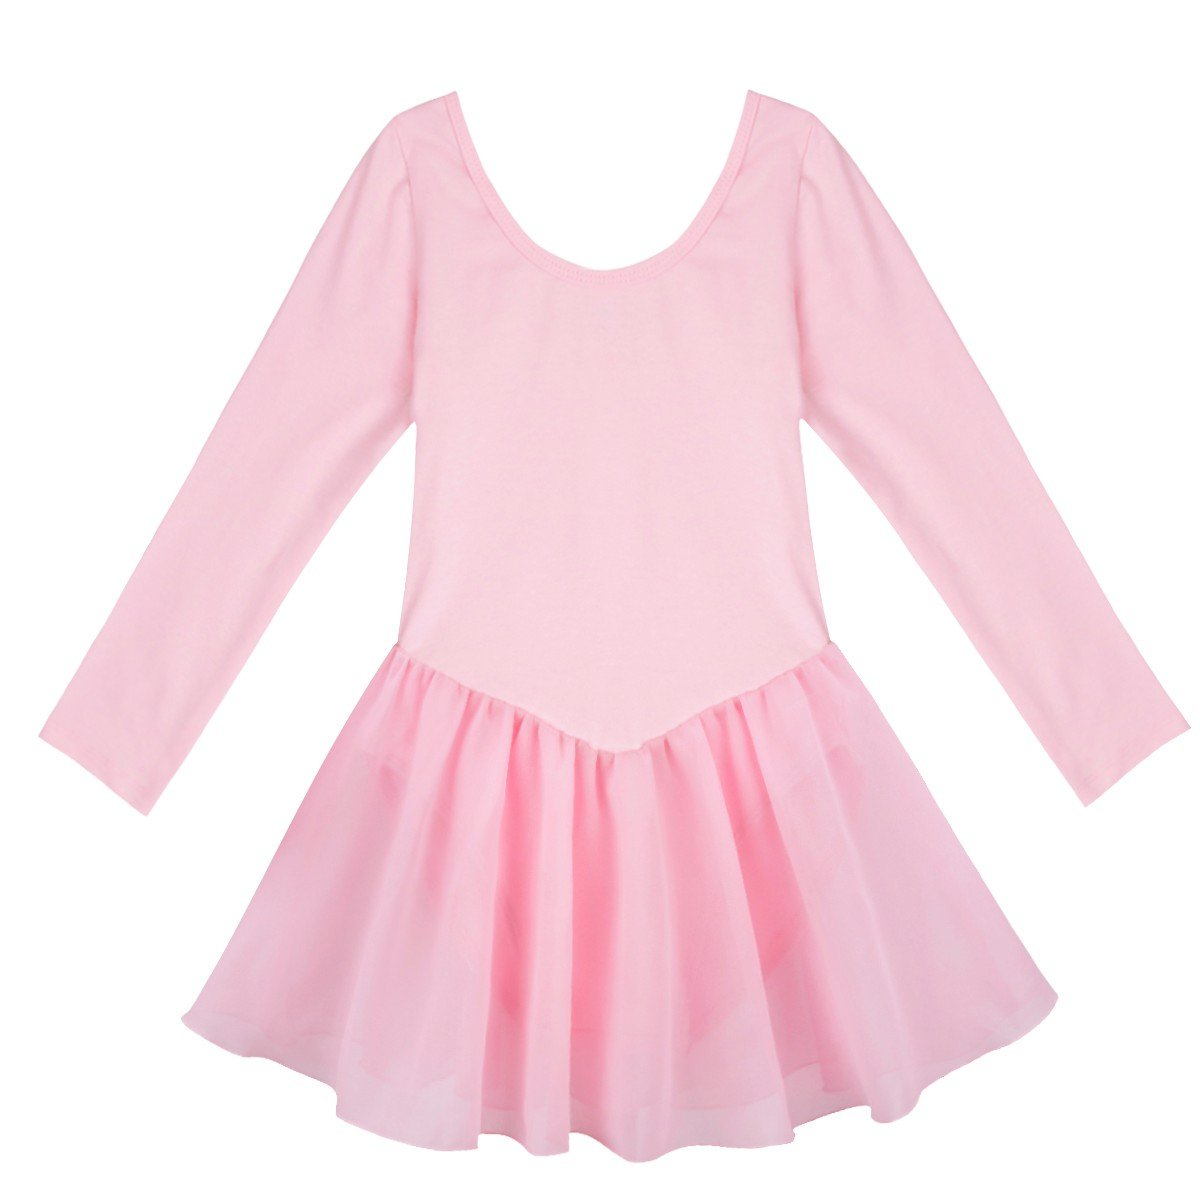 Pink FEESHOW Girls Team Basic Long Sleeve Ballet Dance Tutu Dress Gymnastics Leotard Dancewear Outfit